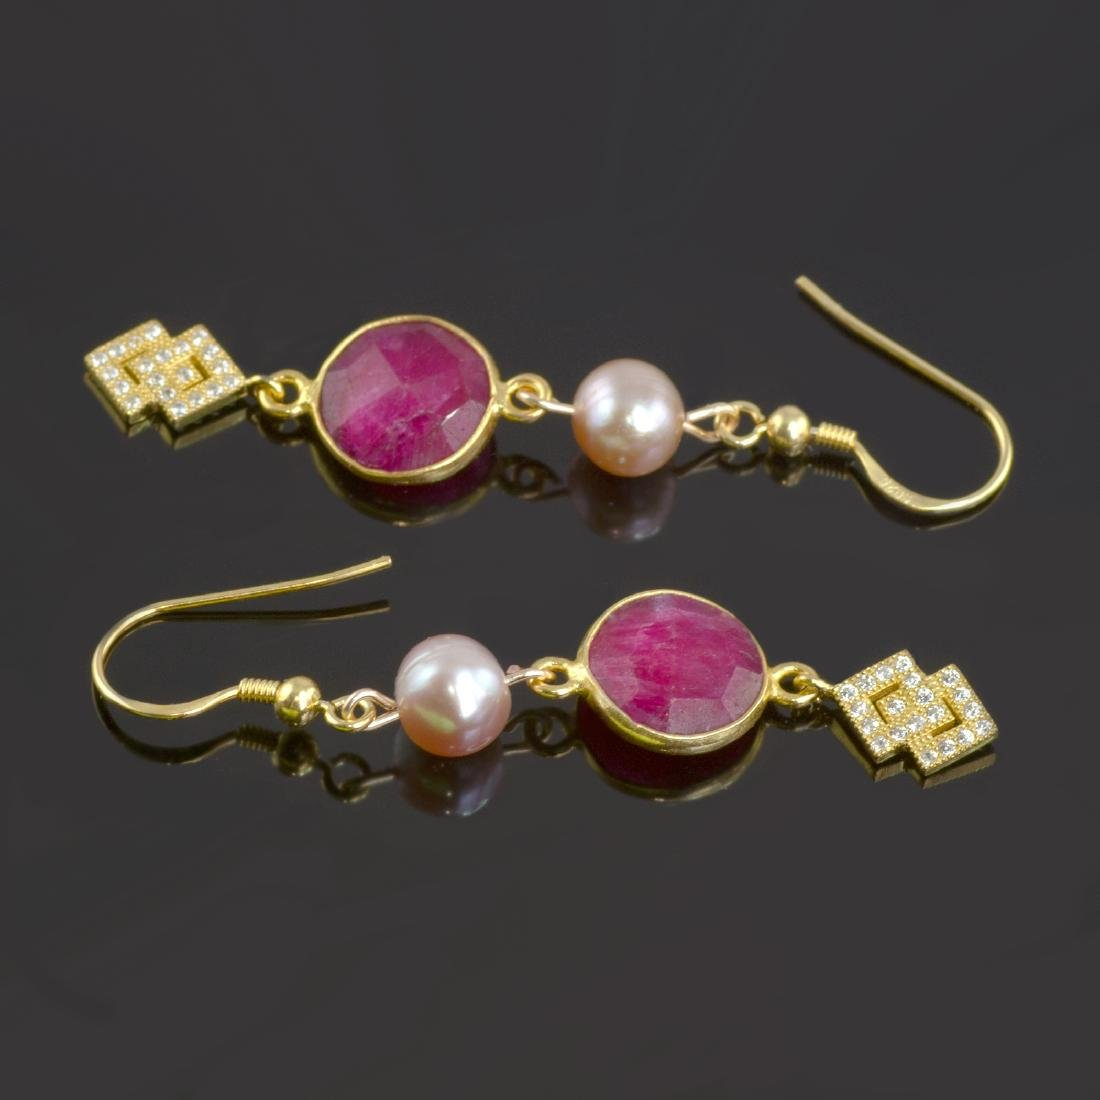 Ruby 5 carat Earrings with Pearls - 4